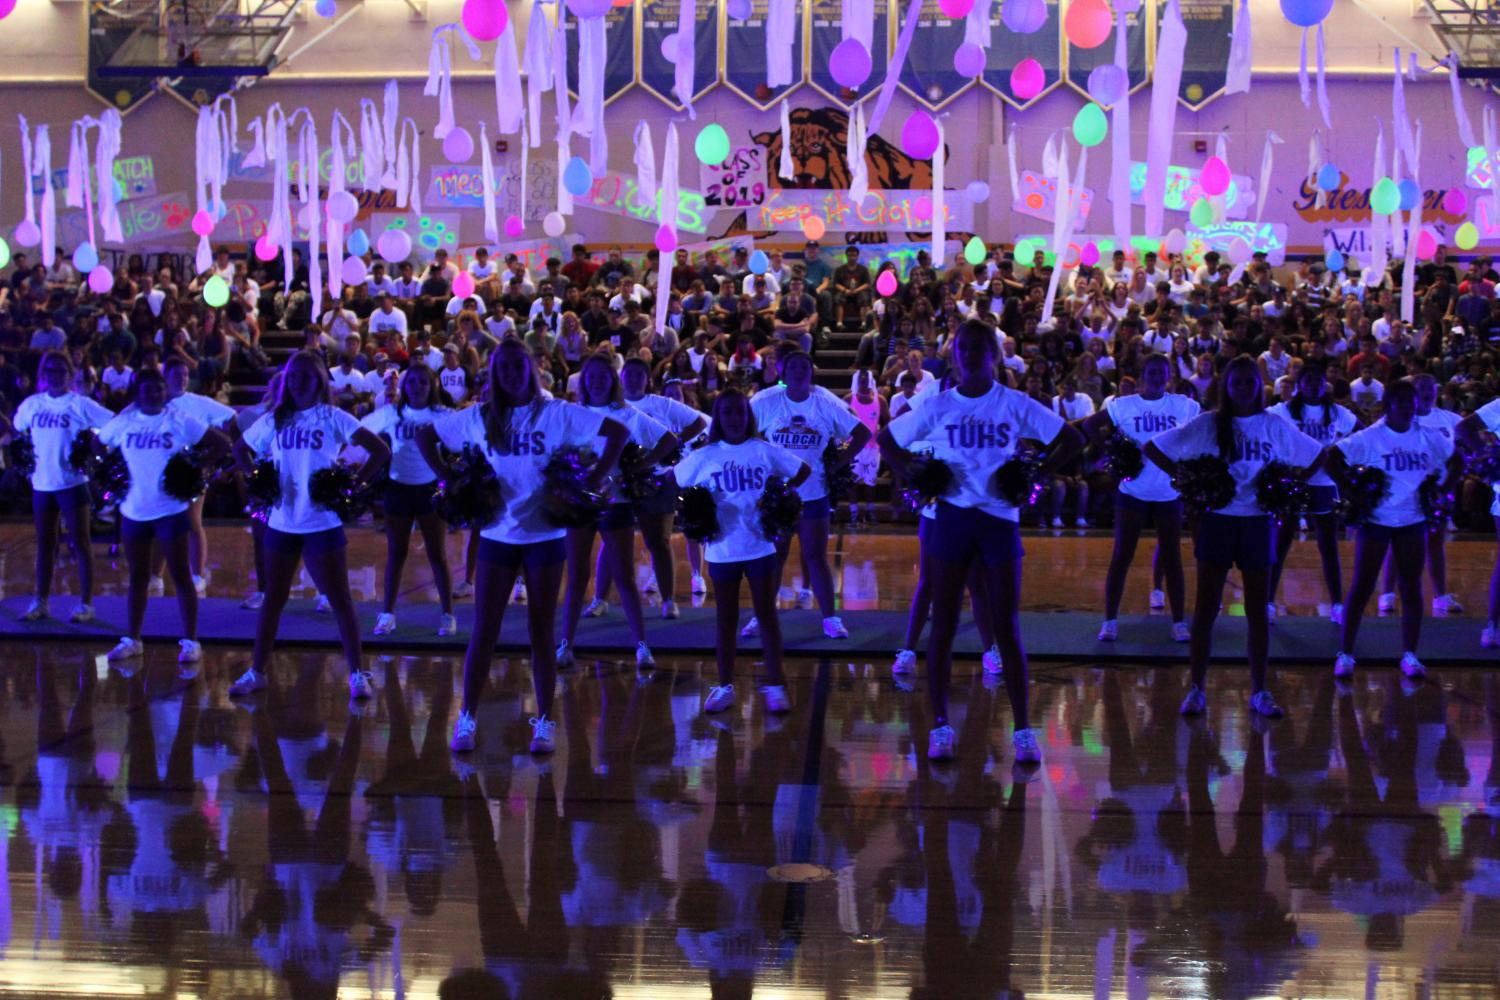 Wildcat+Cheerleaders+taught+the+Alma+Mater+at+the+Welcome+Back+Rally.